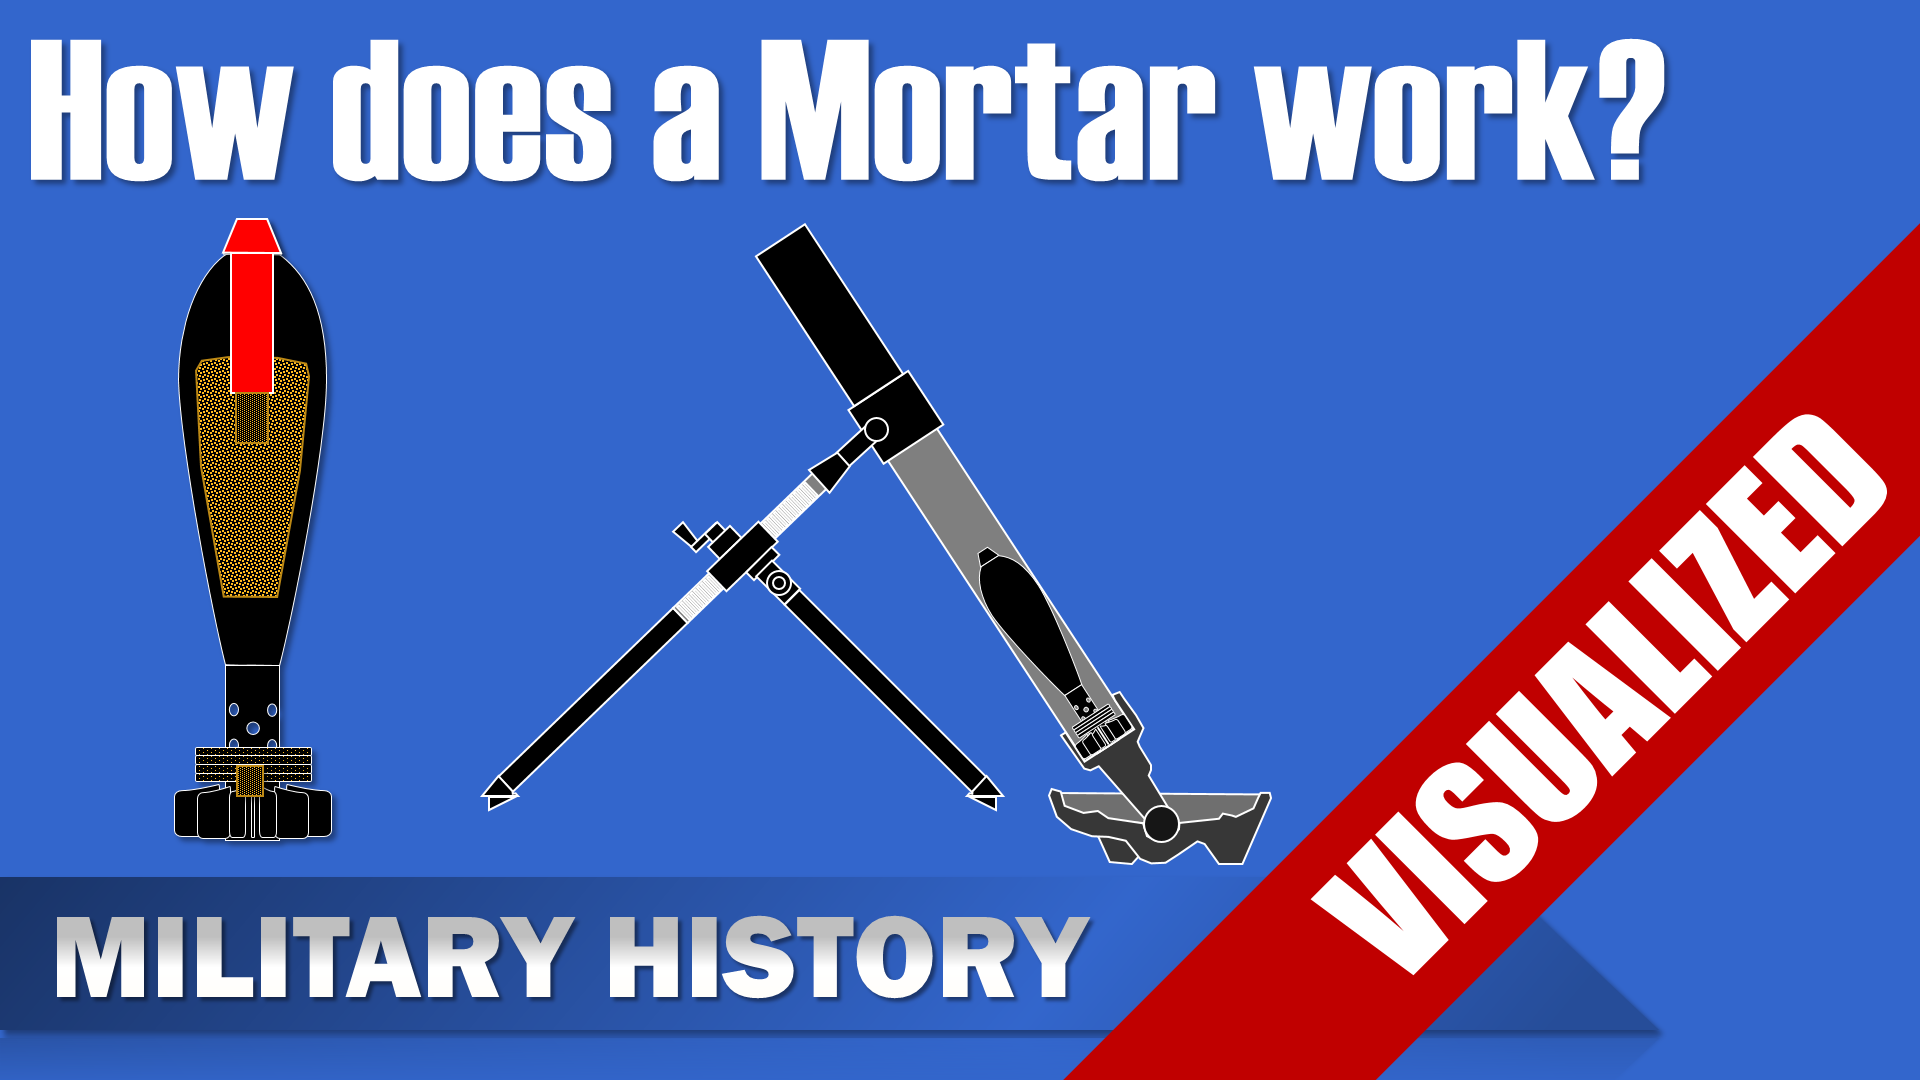 How does a Mortar work?